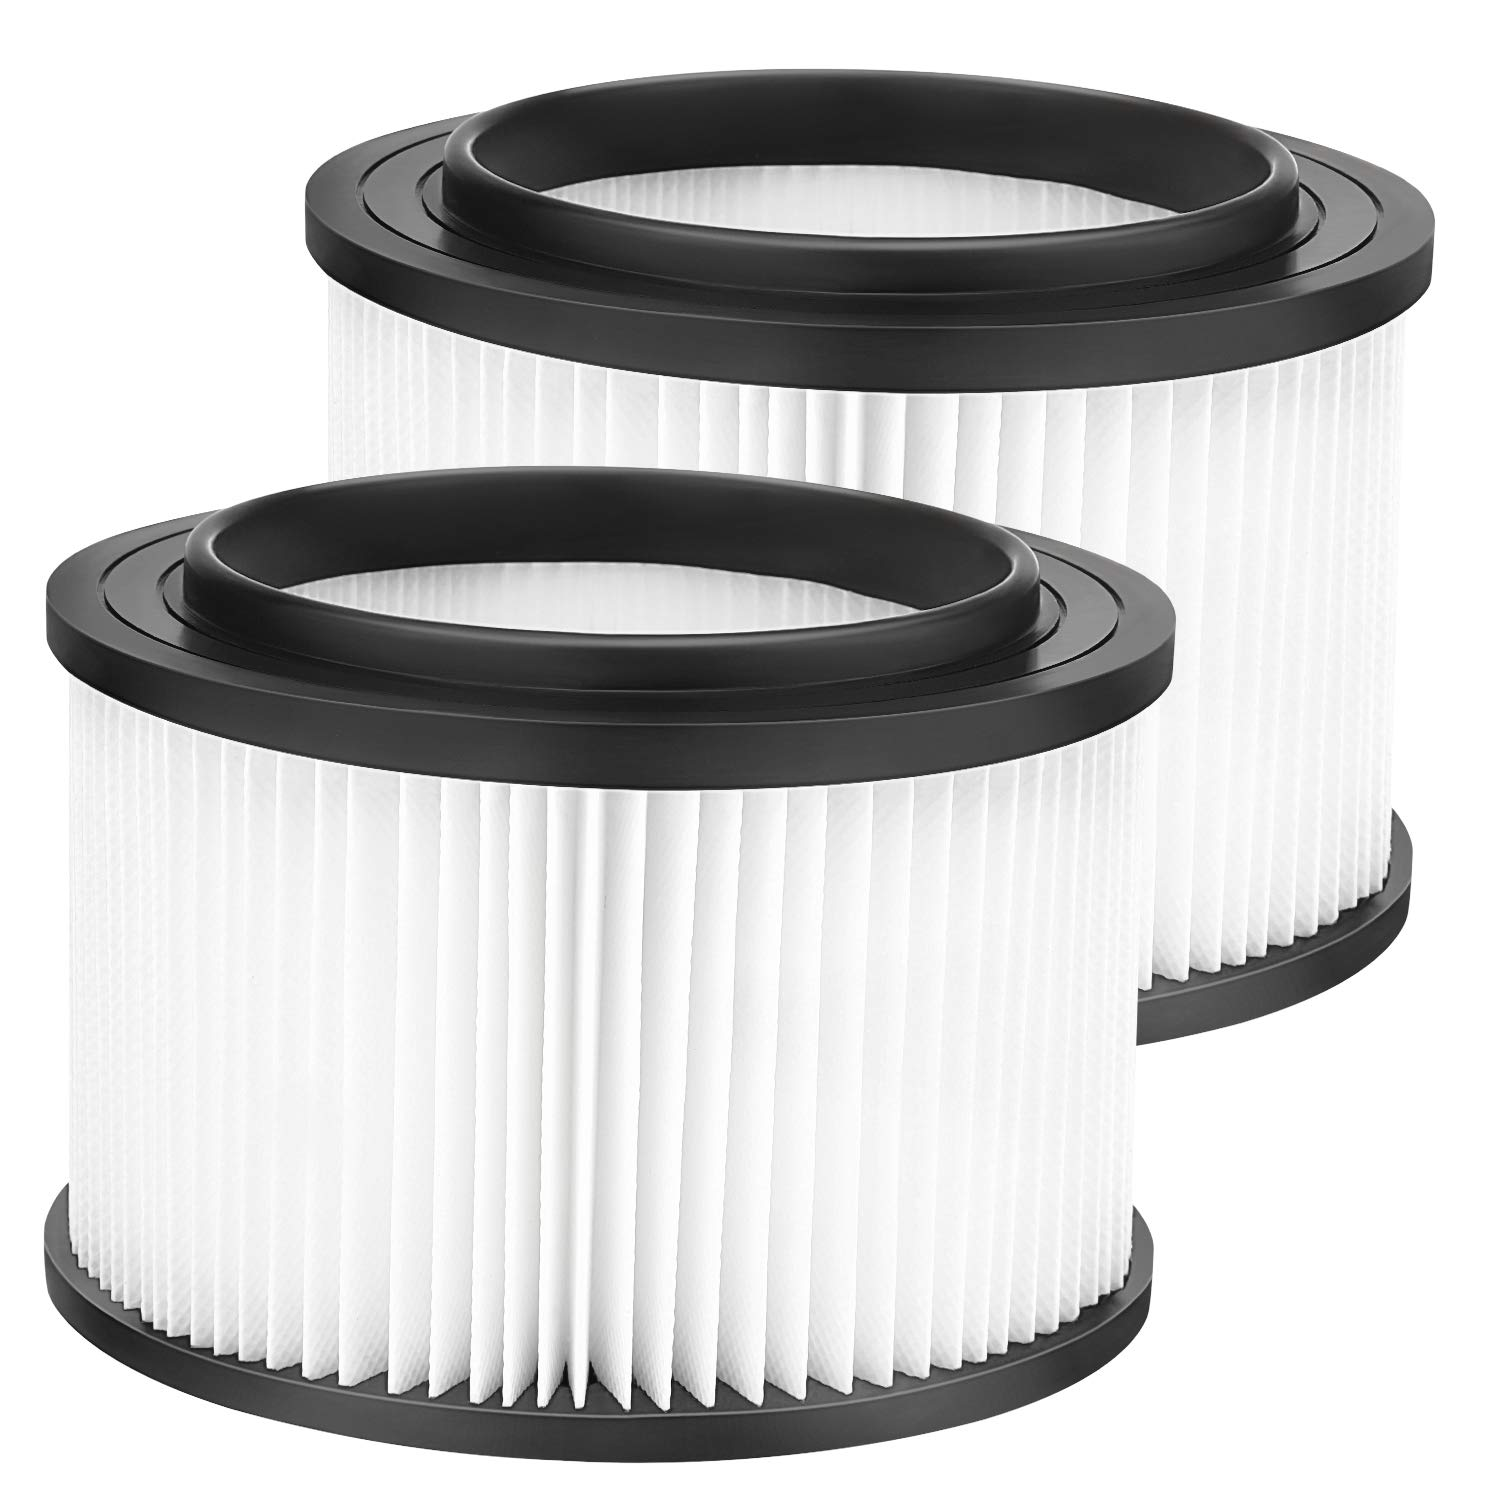 isinlive 917810 Replacement Filter for Craftsman Shop Vacuum Fits 3 & 4 Gallon Cartridge Filter Wet Dry Vacuum Filter Replace Part (2 Pack) by isinlive